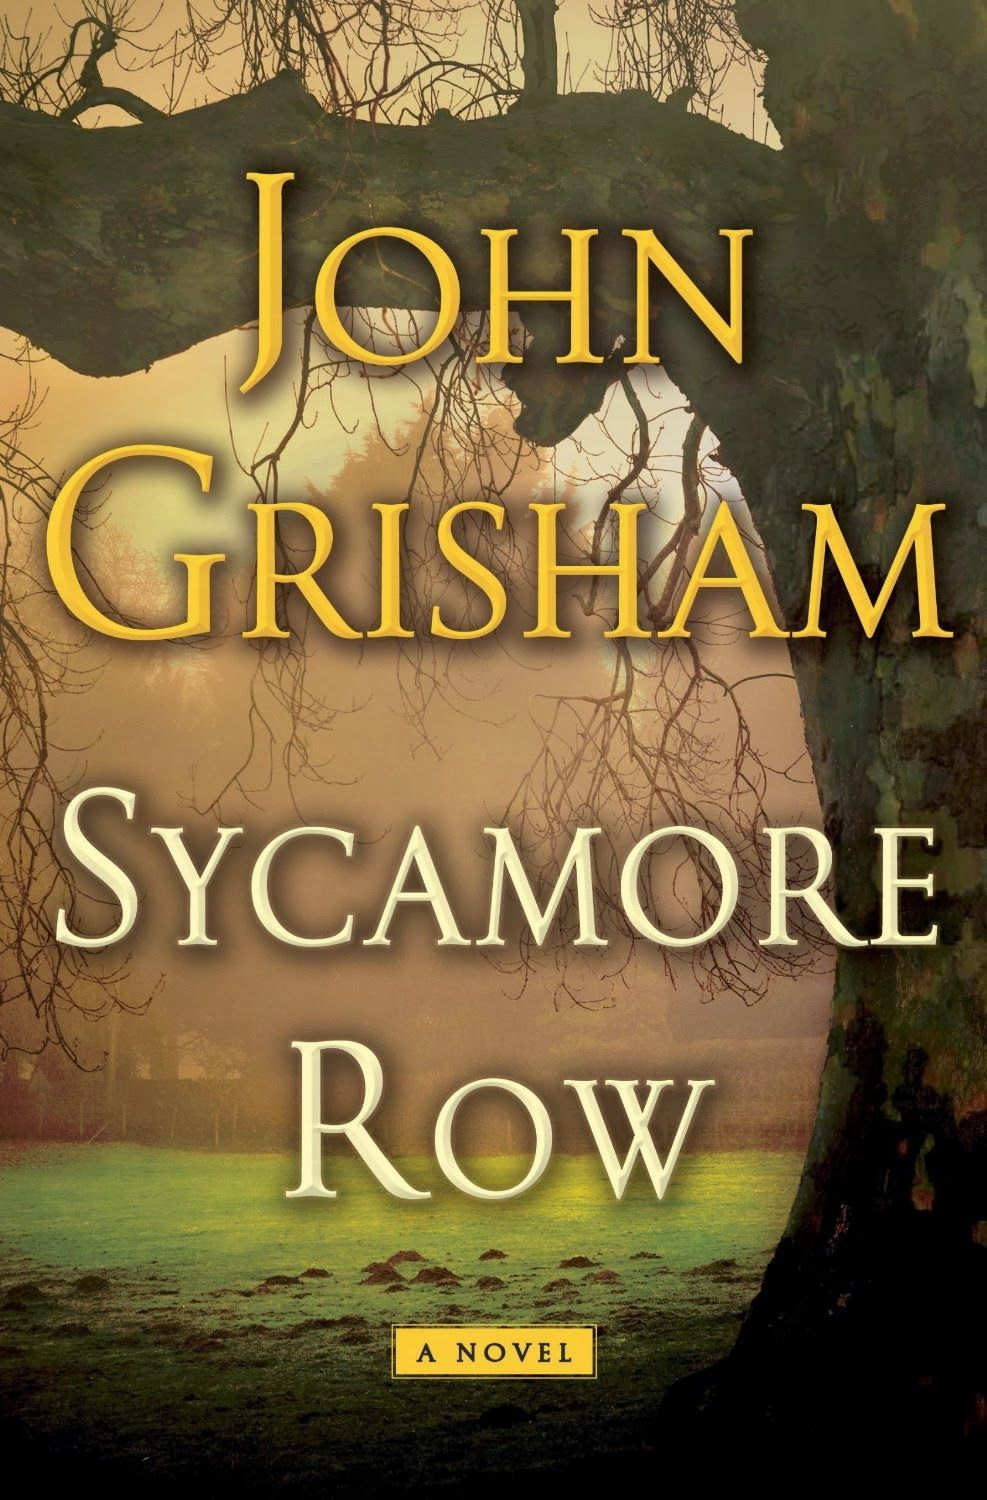 Free Ebooks Download In Pdf,mobi, Epub And Kindle: Sycamore Row  John